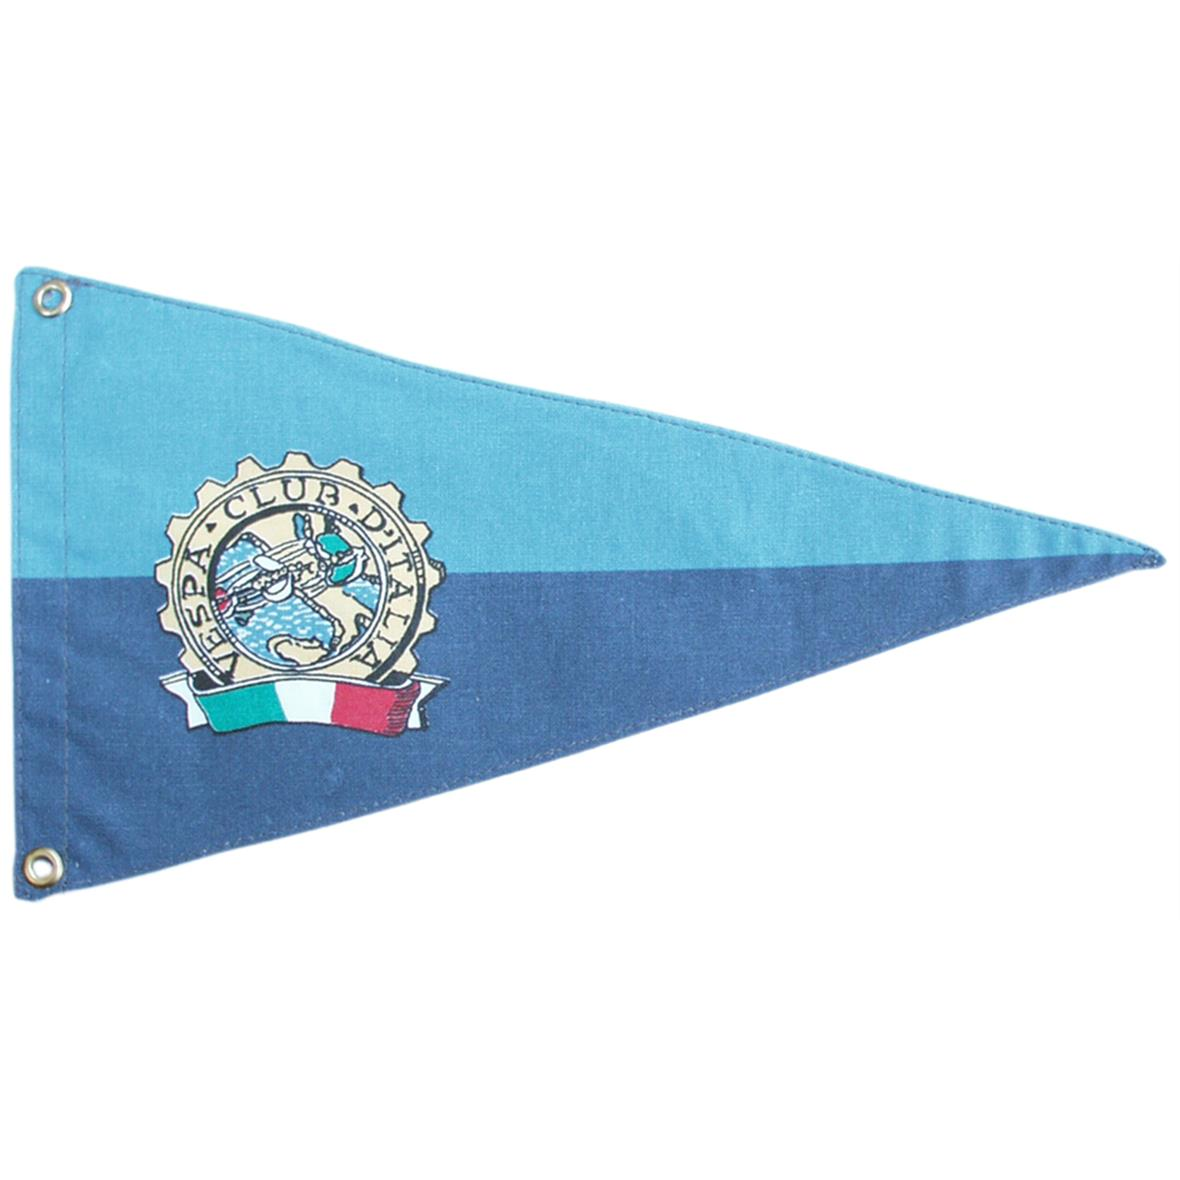 "Product Image for 'Pennant ""Vespa Club d'Italia""Title'"